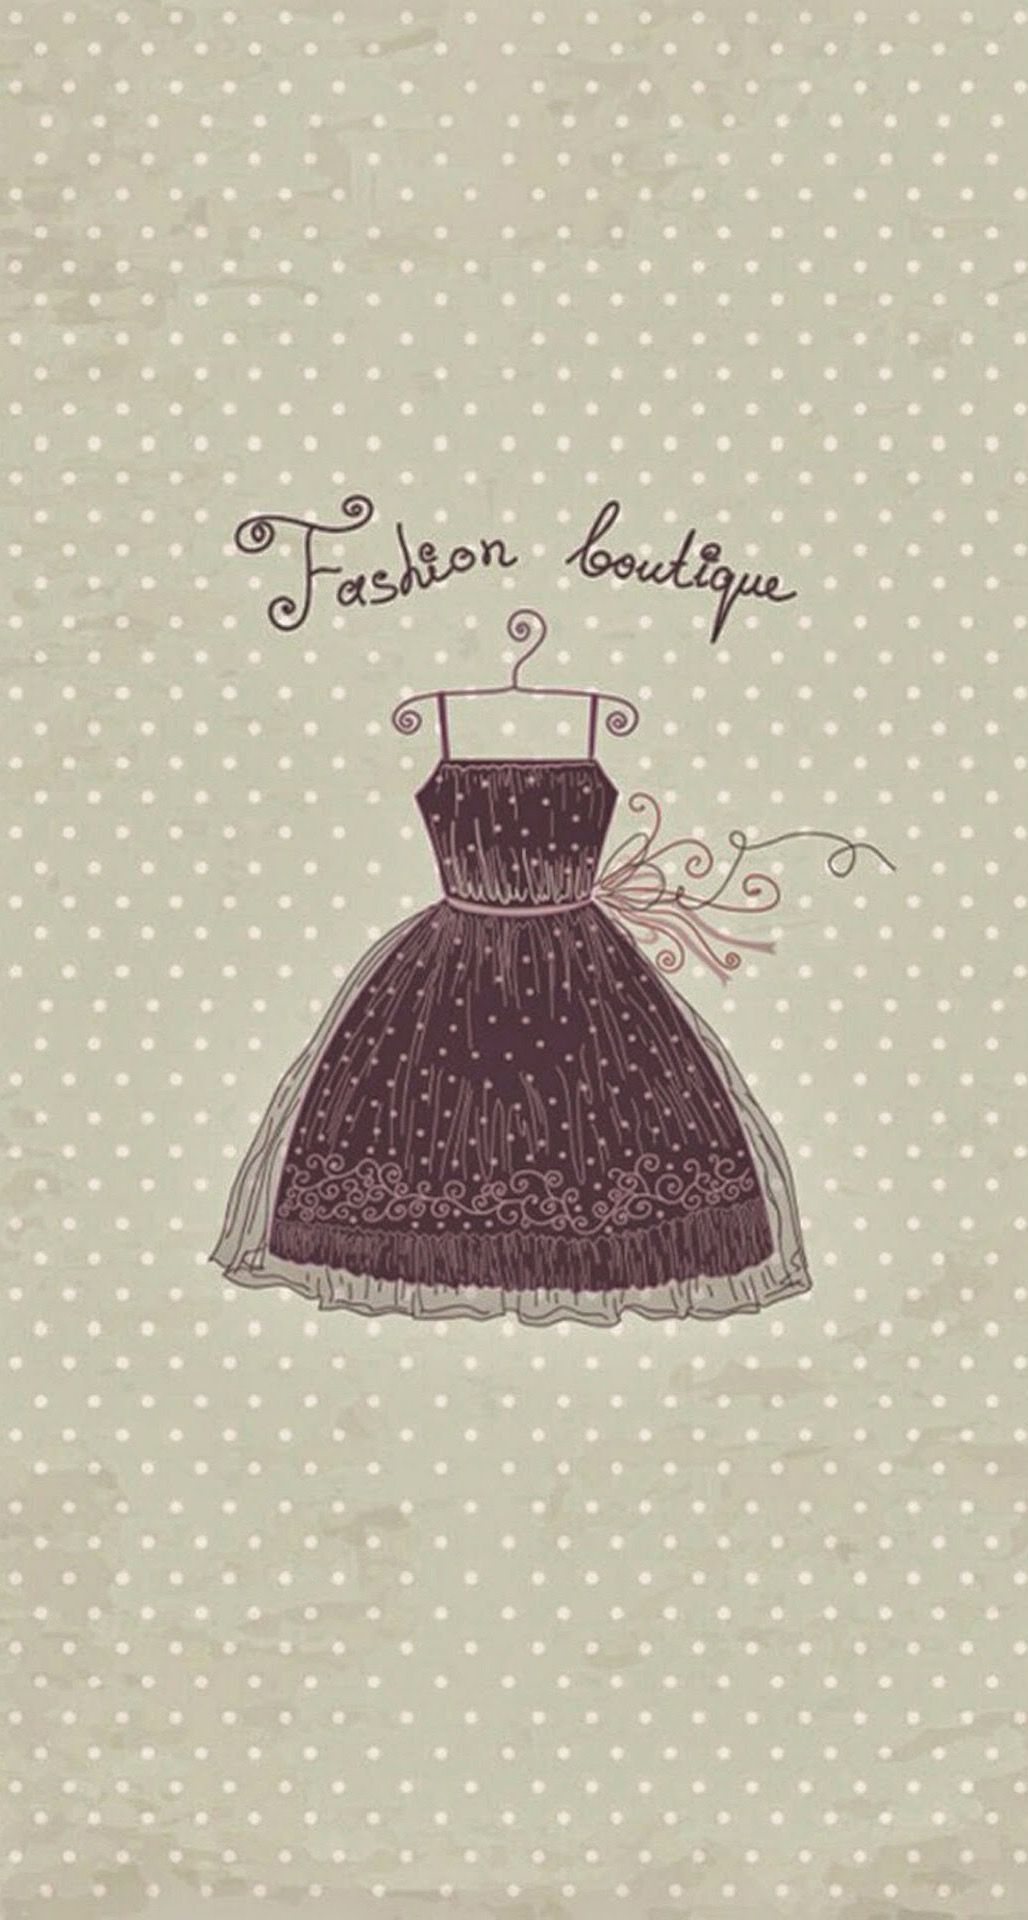 Fashion Boutique Vintage Dress iPhone 6 Plus HD Wallpaper